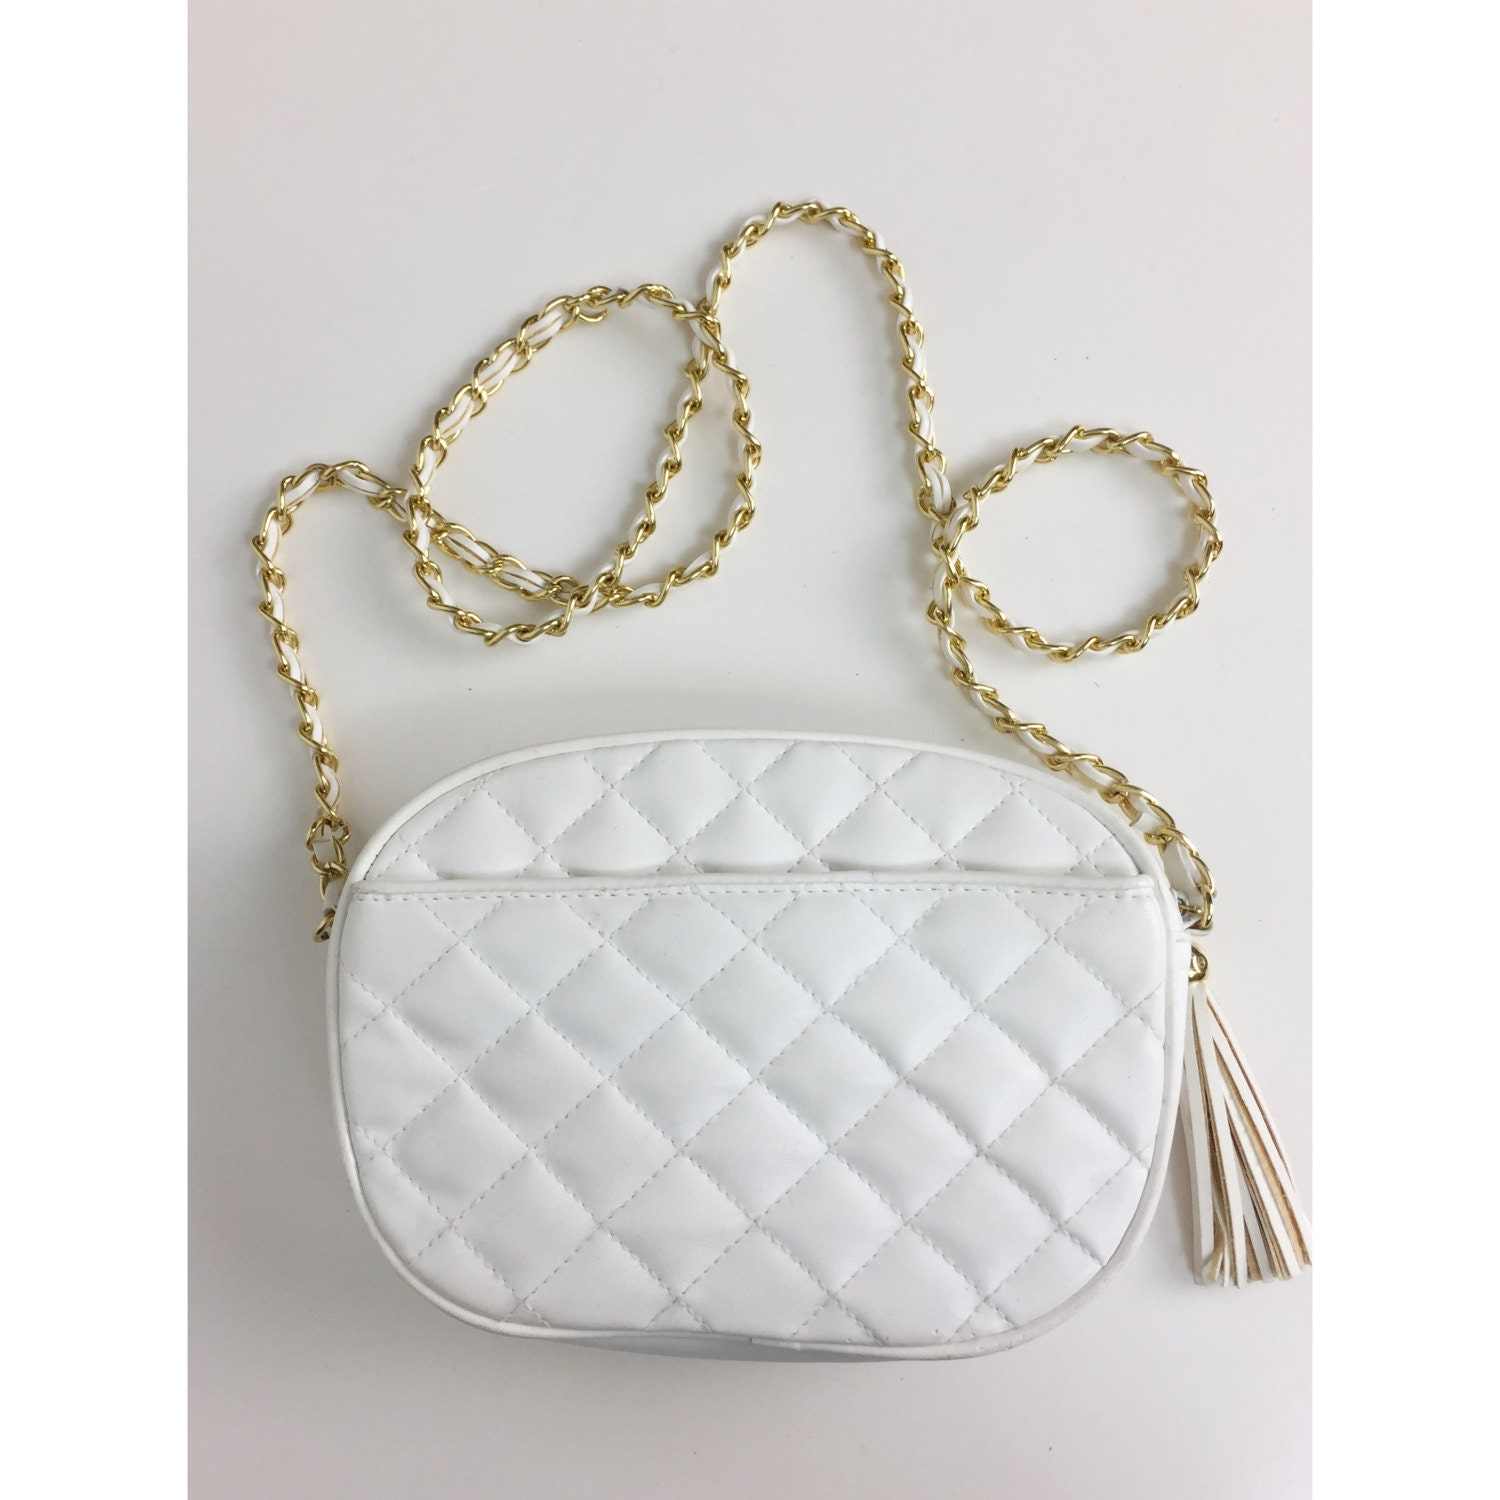 ee7e5c67432 80 s White Purse With Gold Chain Strap -Vintage Quilted Vinyl Purse  Shoulder Bag Chain Strap Small 1980s Ivory White Via Piacci Purse